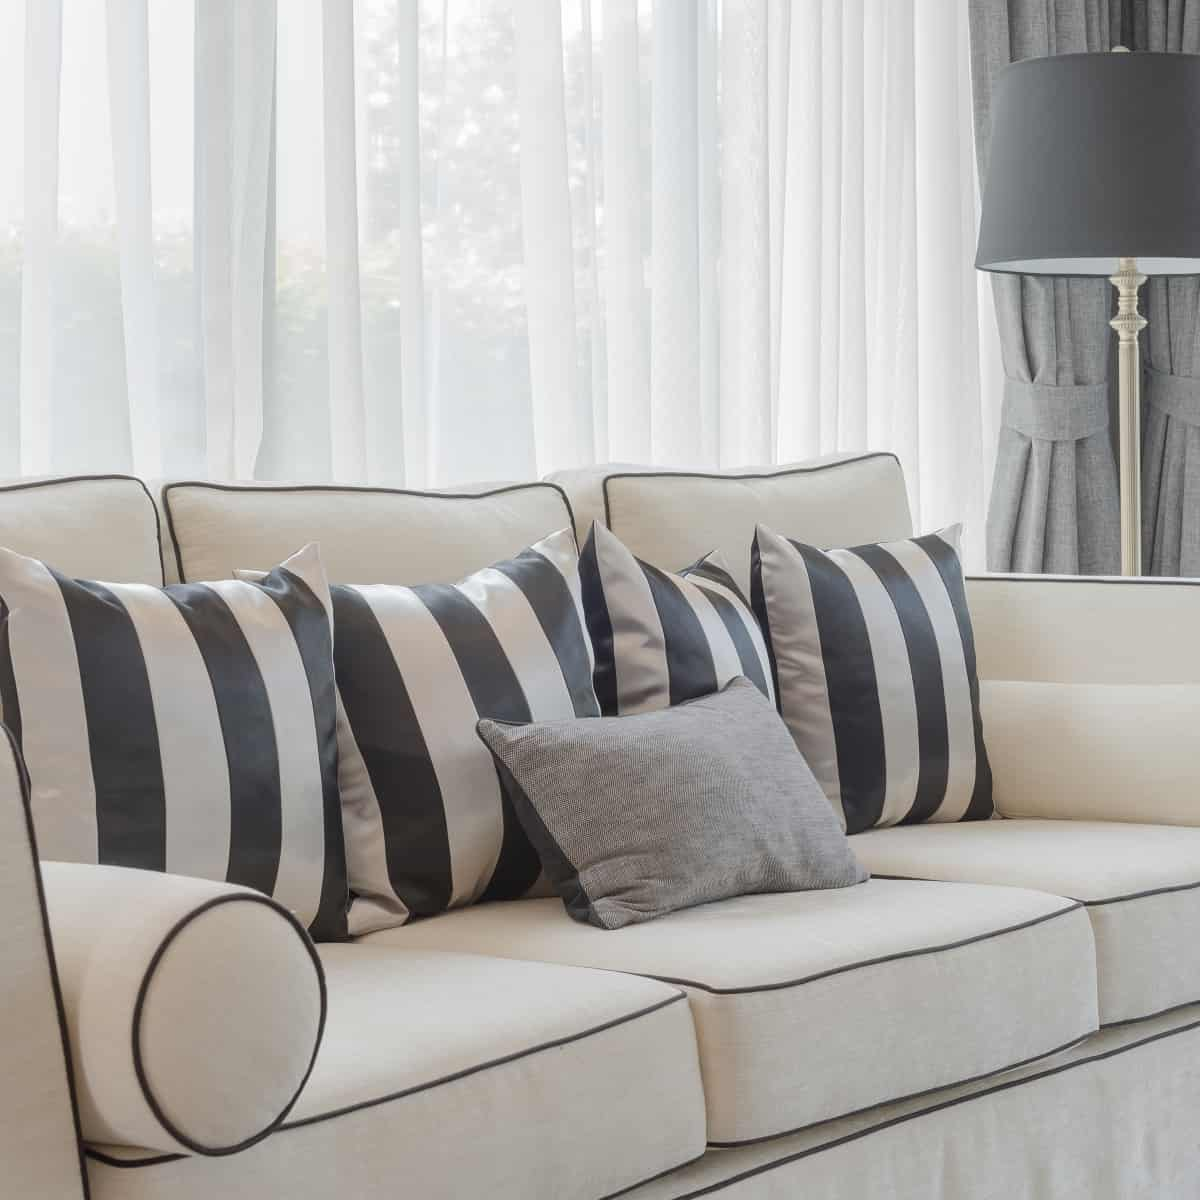 Clean white sofa with stripy cushions